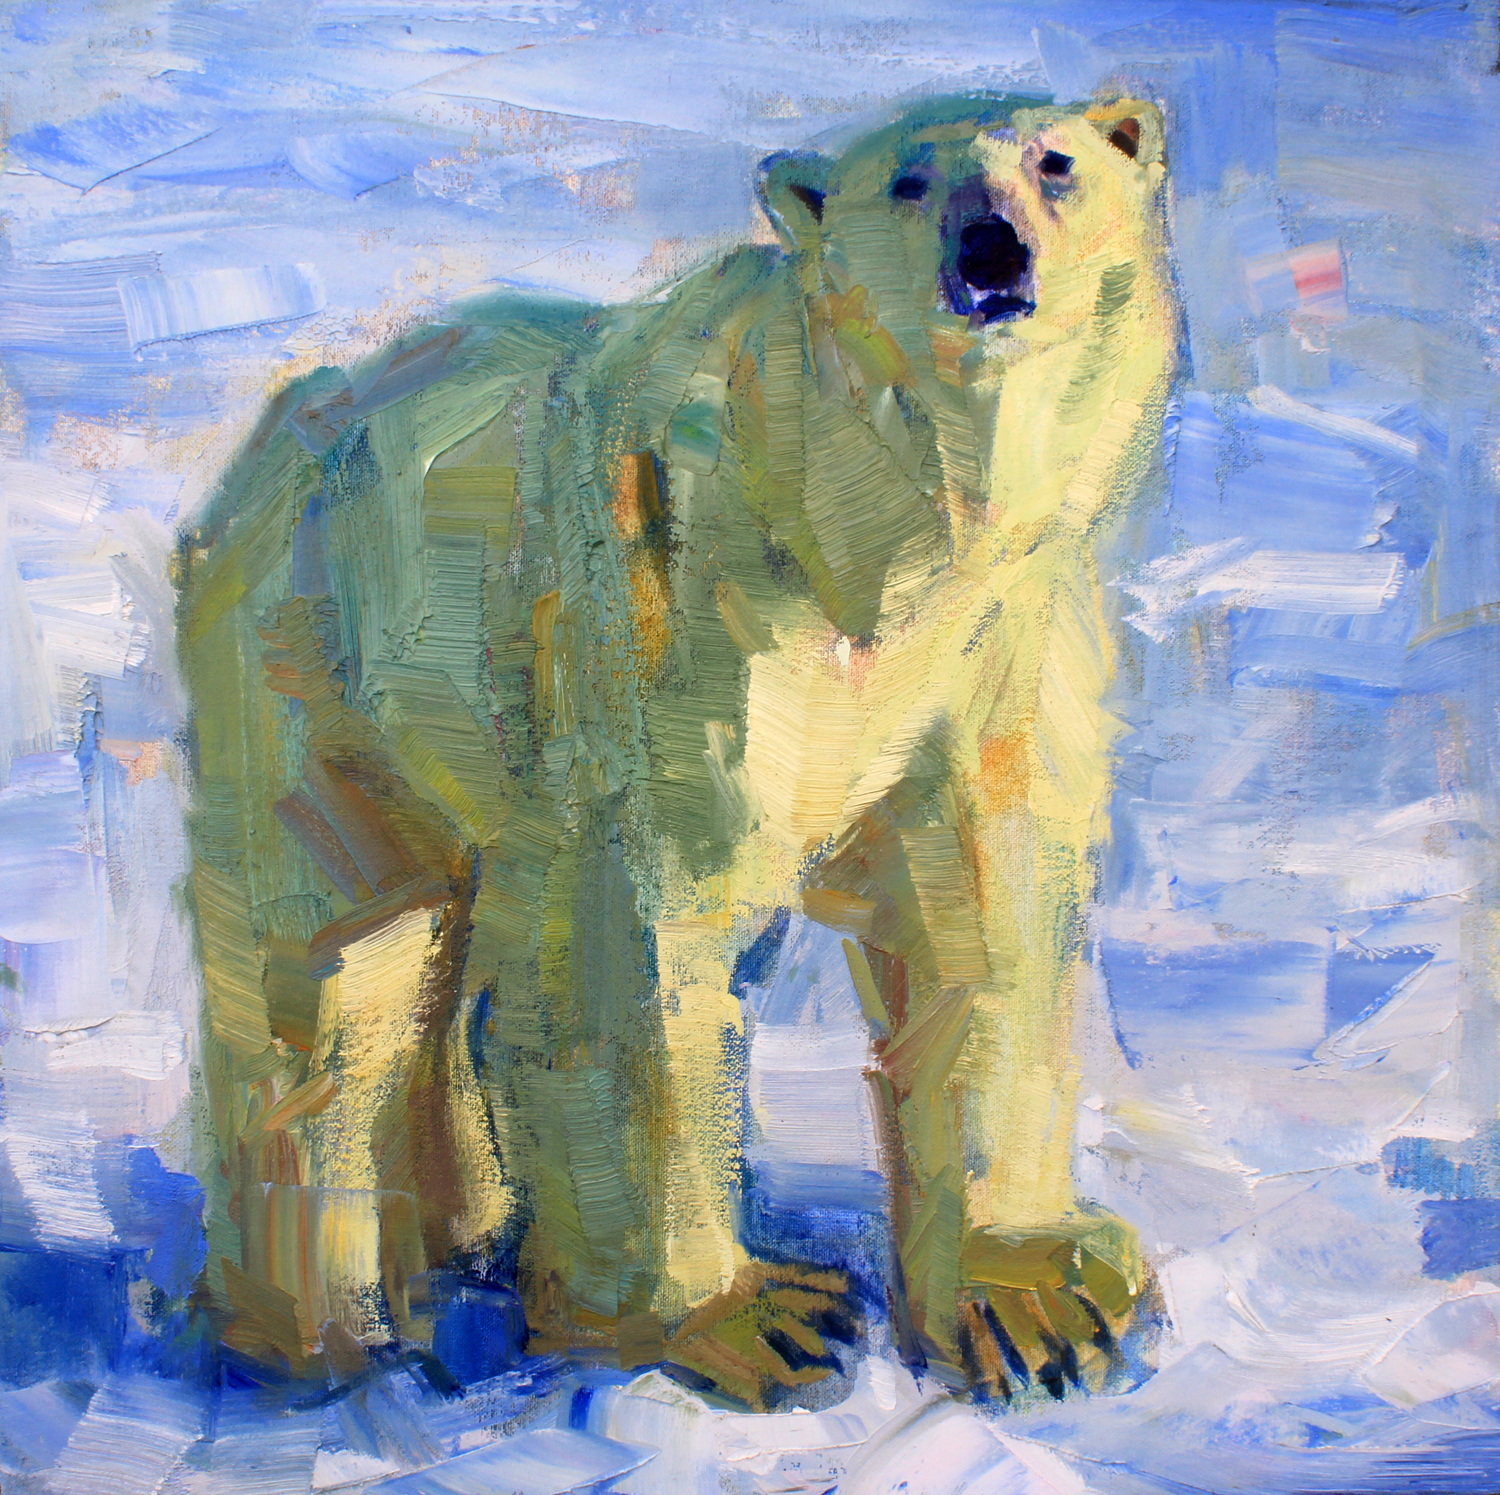 """Square Bear"", 20x20 inches, oil on canvas, SOLD"